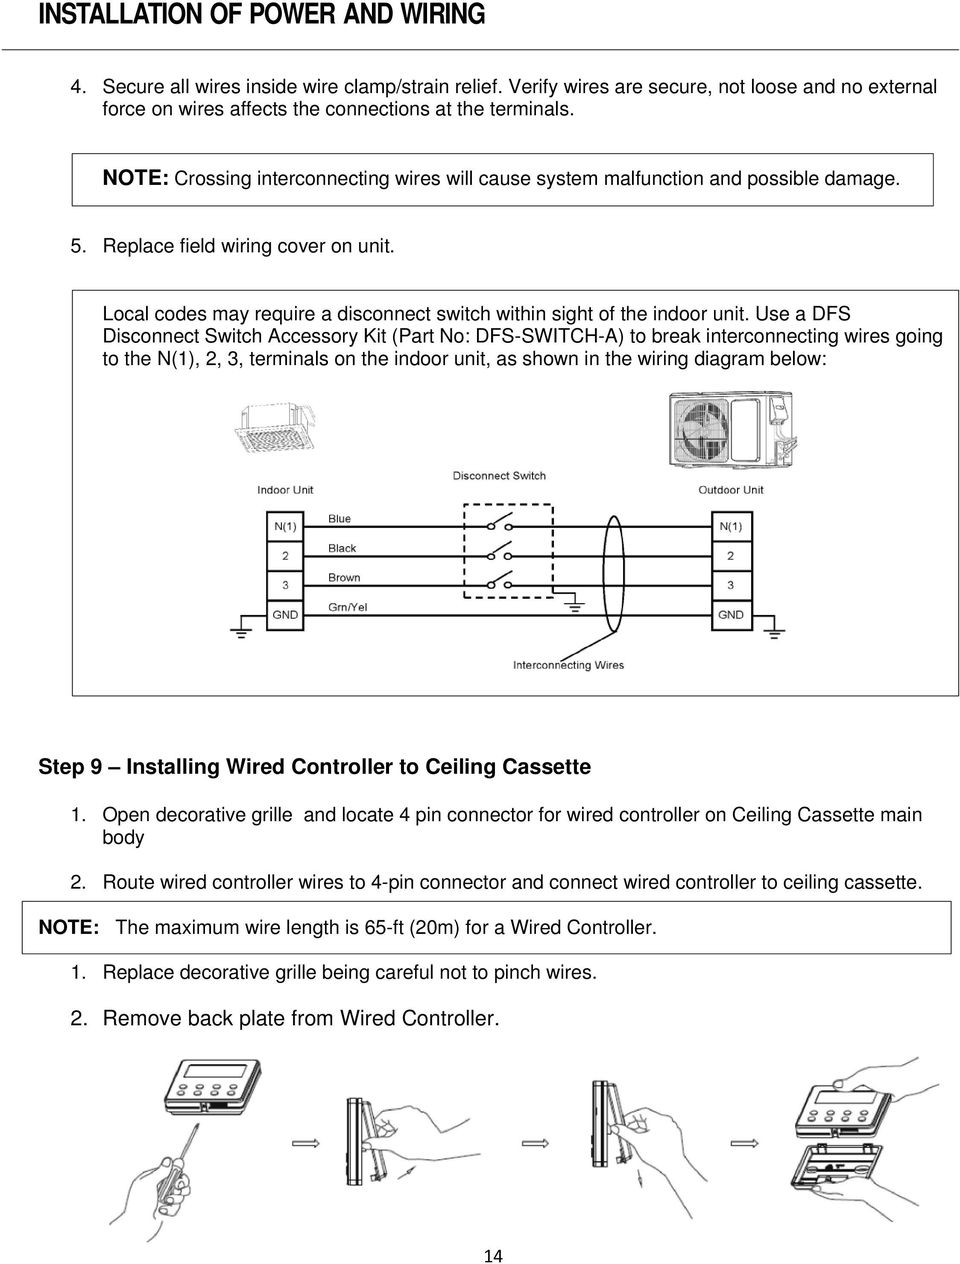 Ceiling Cassette Ductless System Pdf Force Controller Wiring Diagram Local Codes May Require A Disconnect Switch Within Sight Of The Indoor Unit